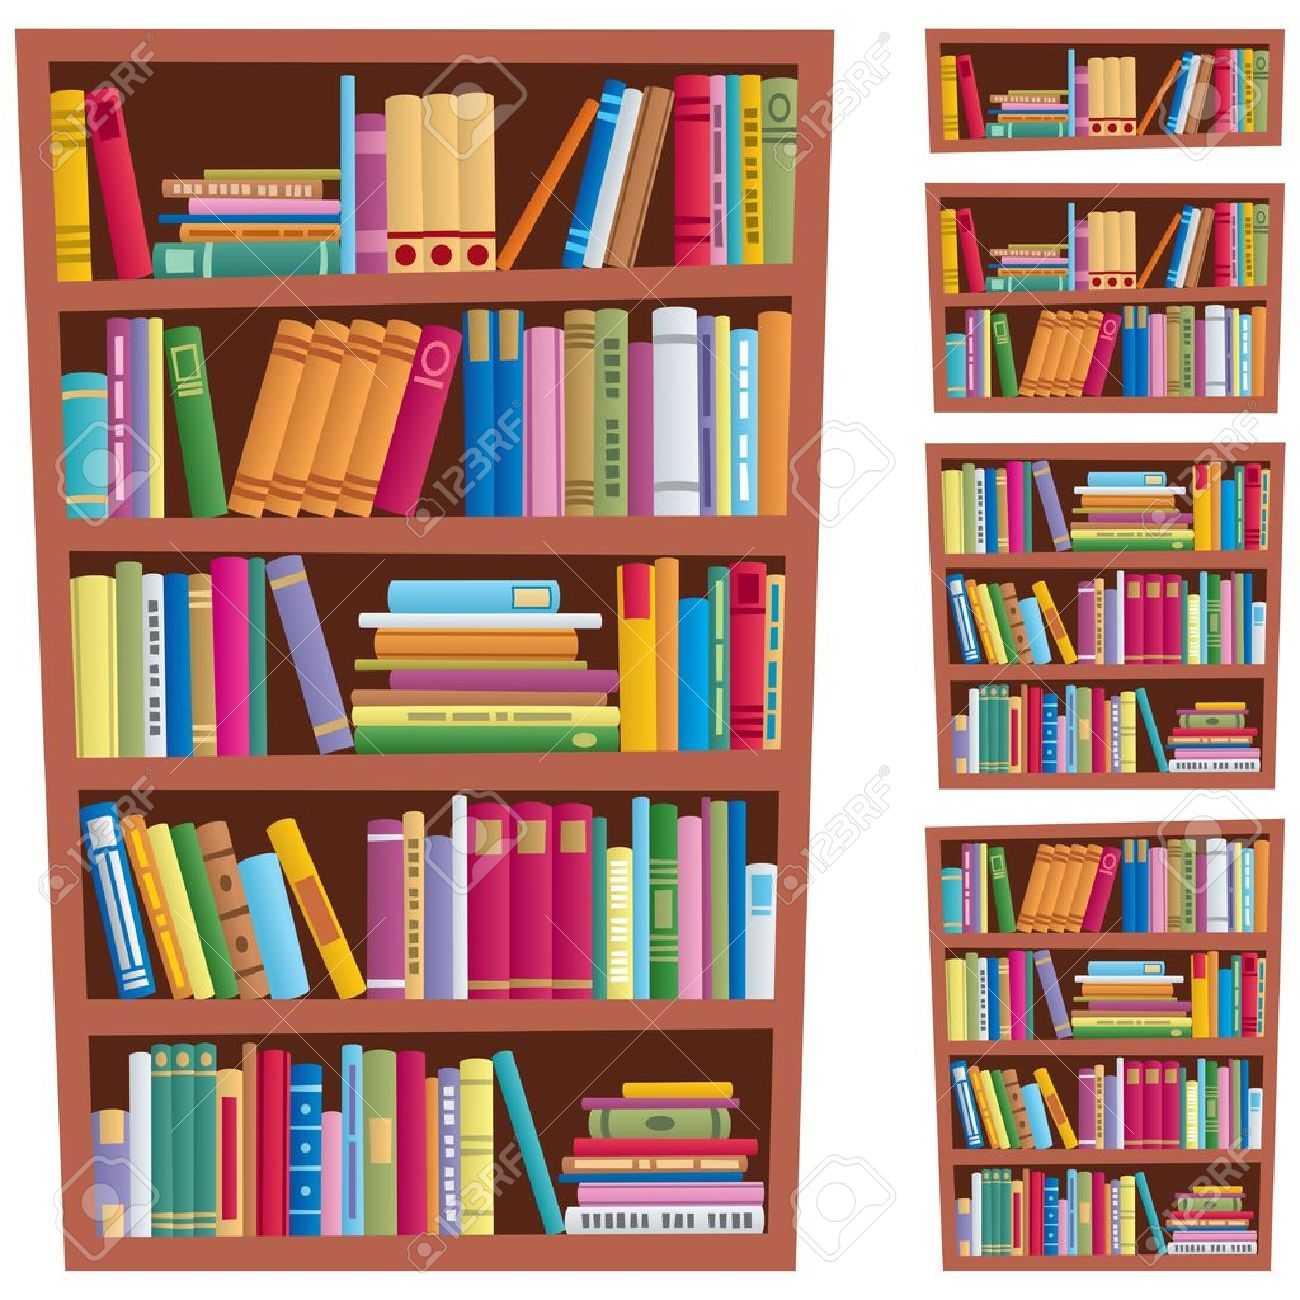 Cartoon Illustration Of A Bookshelf In 5 Different Versions Stock Vector